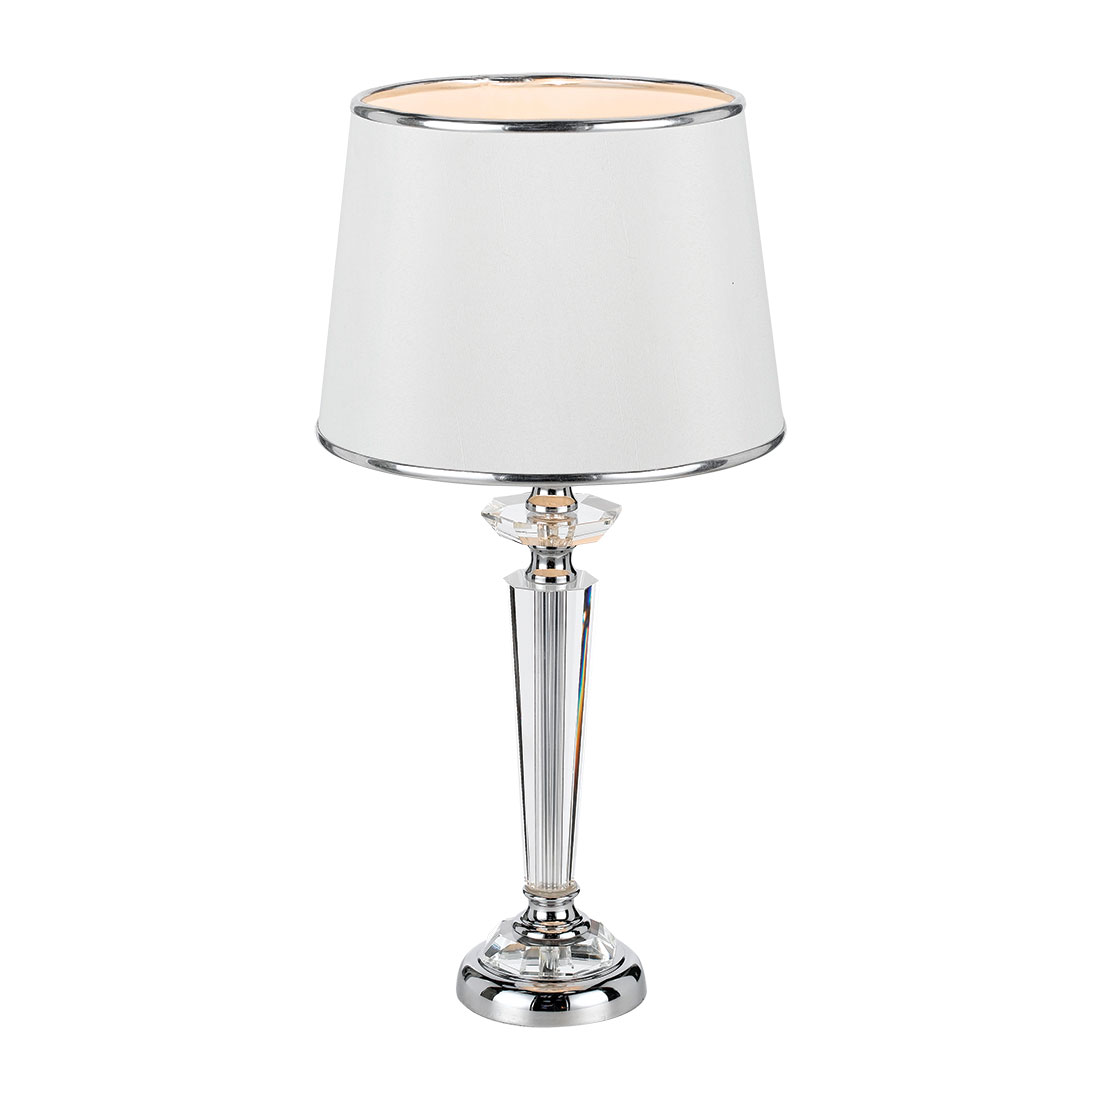 Diana chrome table lamp online lighting diana chrome table lamp aloadofball Image collections